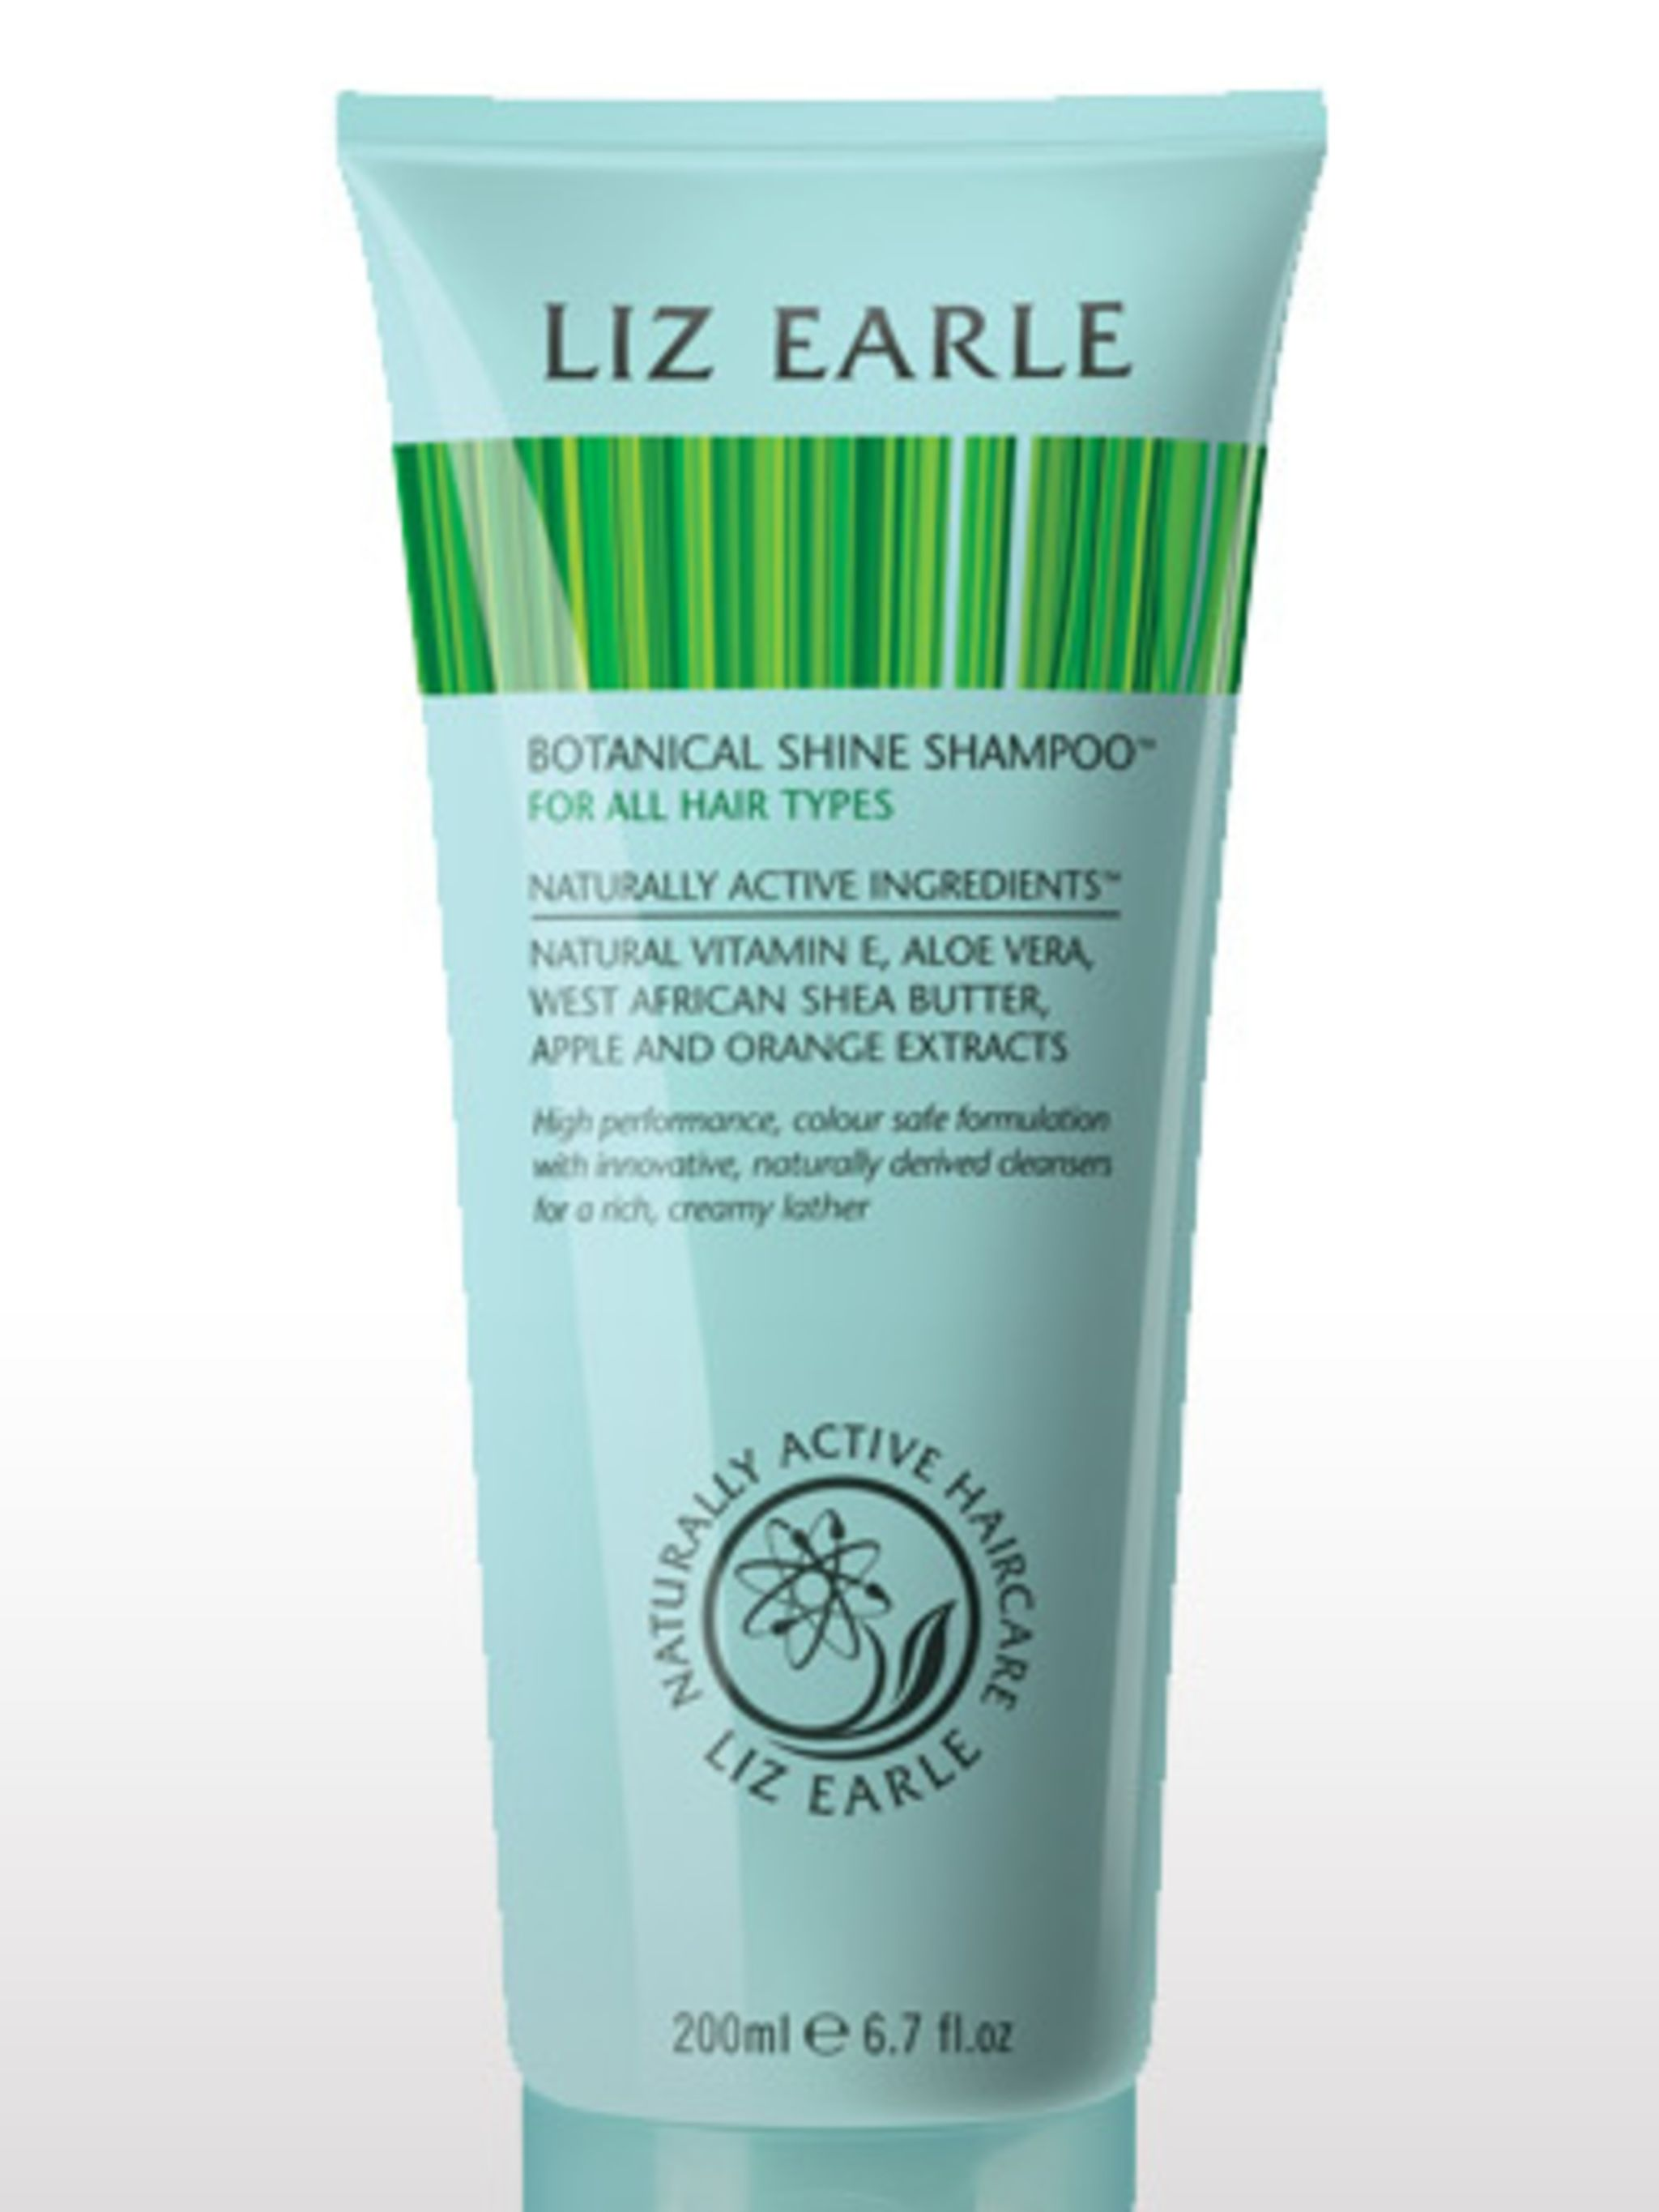 <p>This is Liz Earle's first foray into haircare, and as a brand known for its natural skincare formulas, I was a smidge sceptical. I was thrilled to be provenwrong. The milky texture smells of wonderfully clean botanicals and works up a proper lather. An